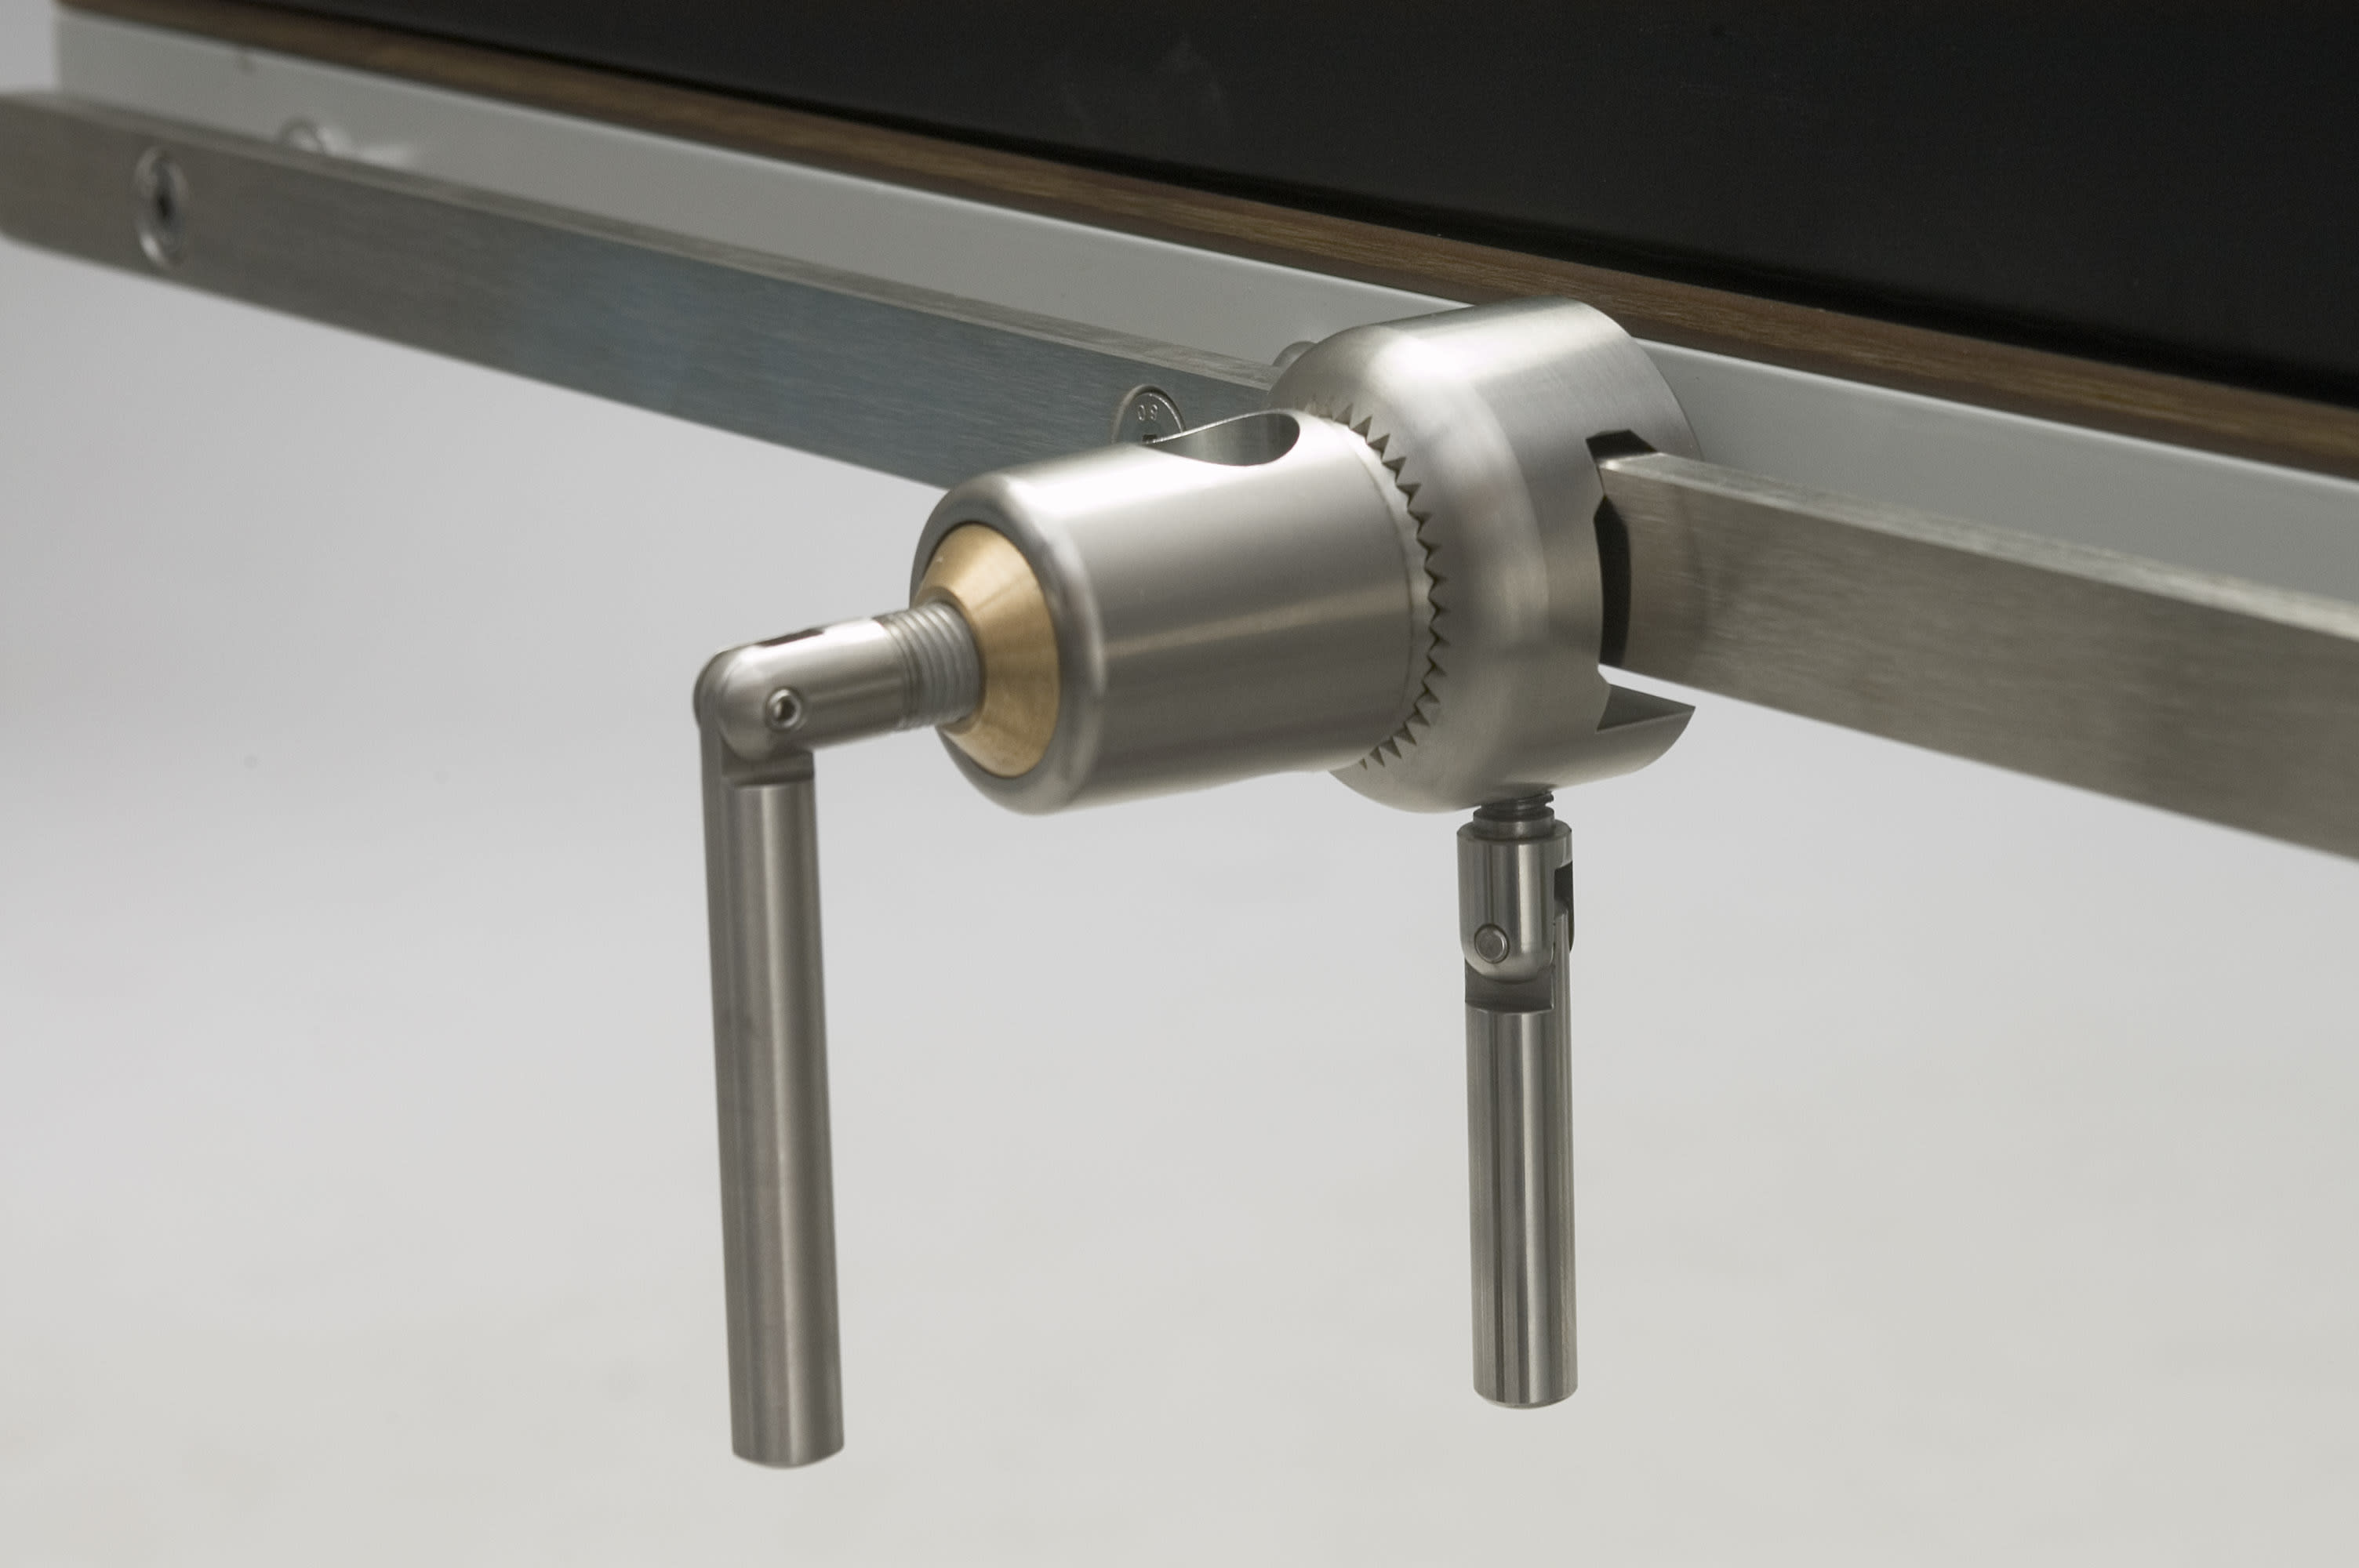 Clamp - Rotary Socket - Stainless Steel - for UK, EU & US Side Bar